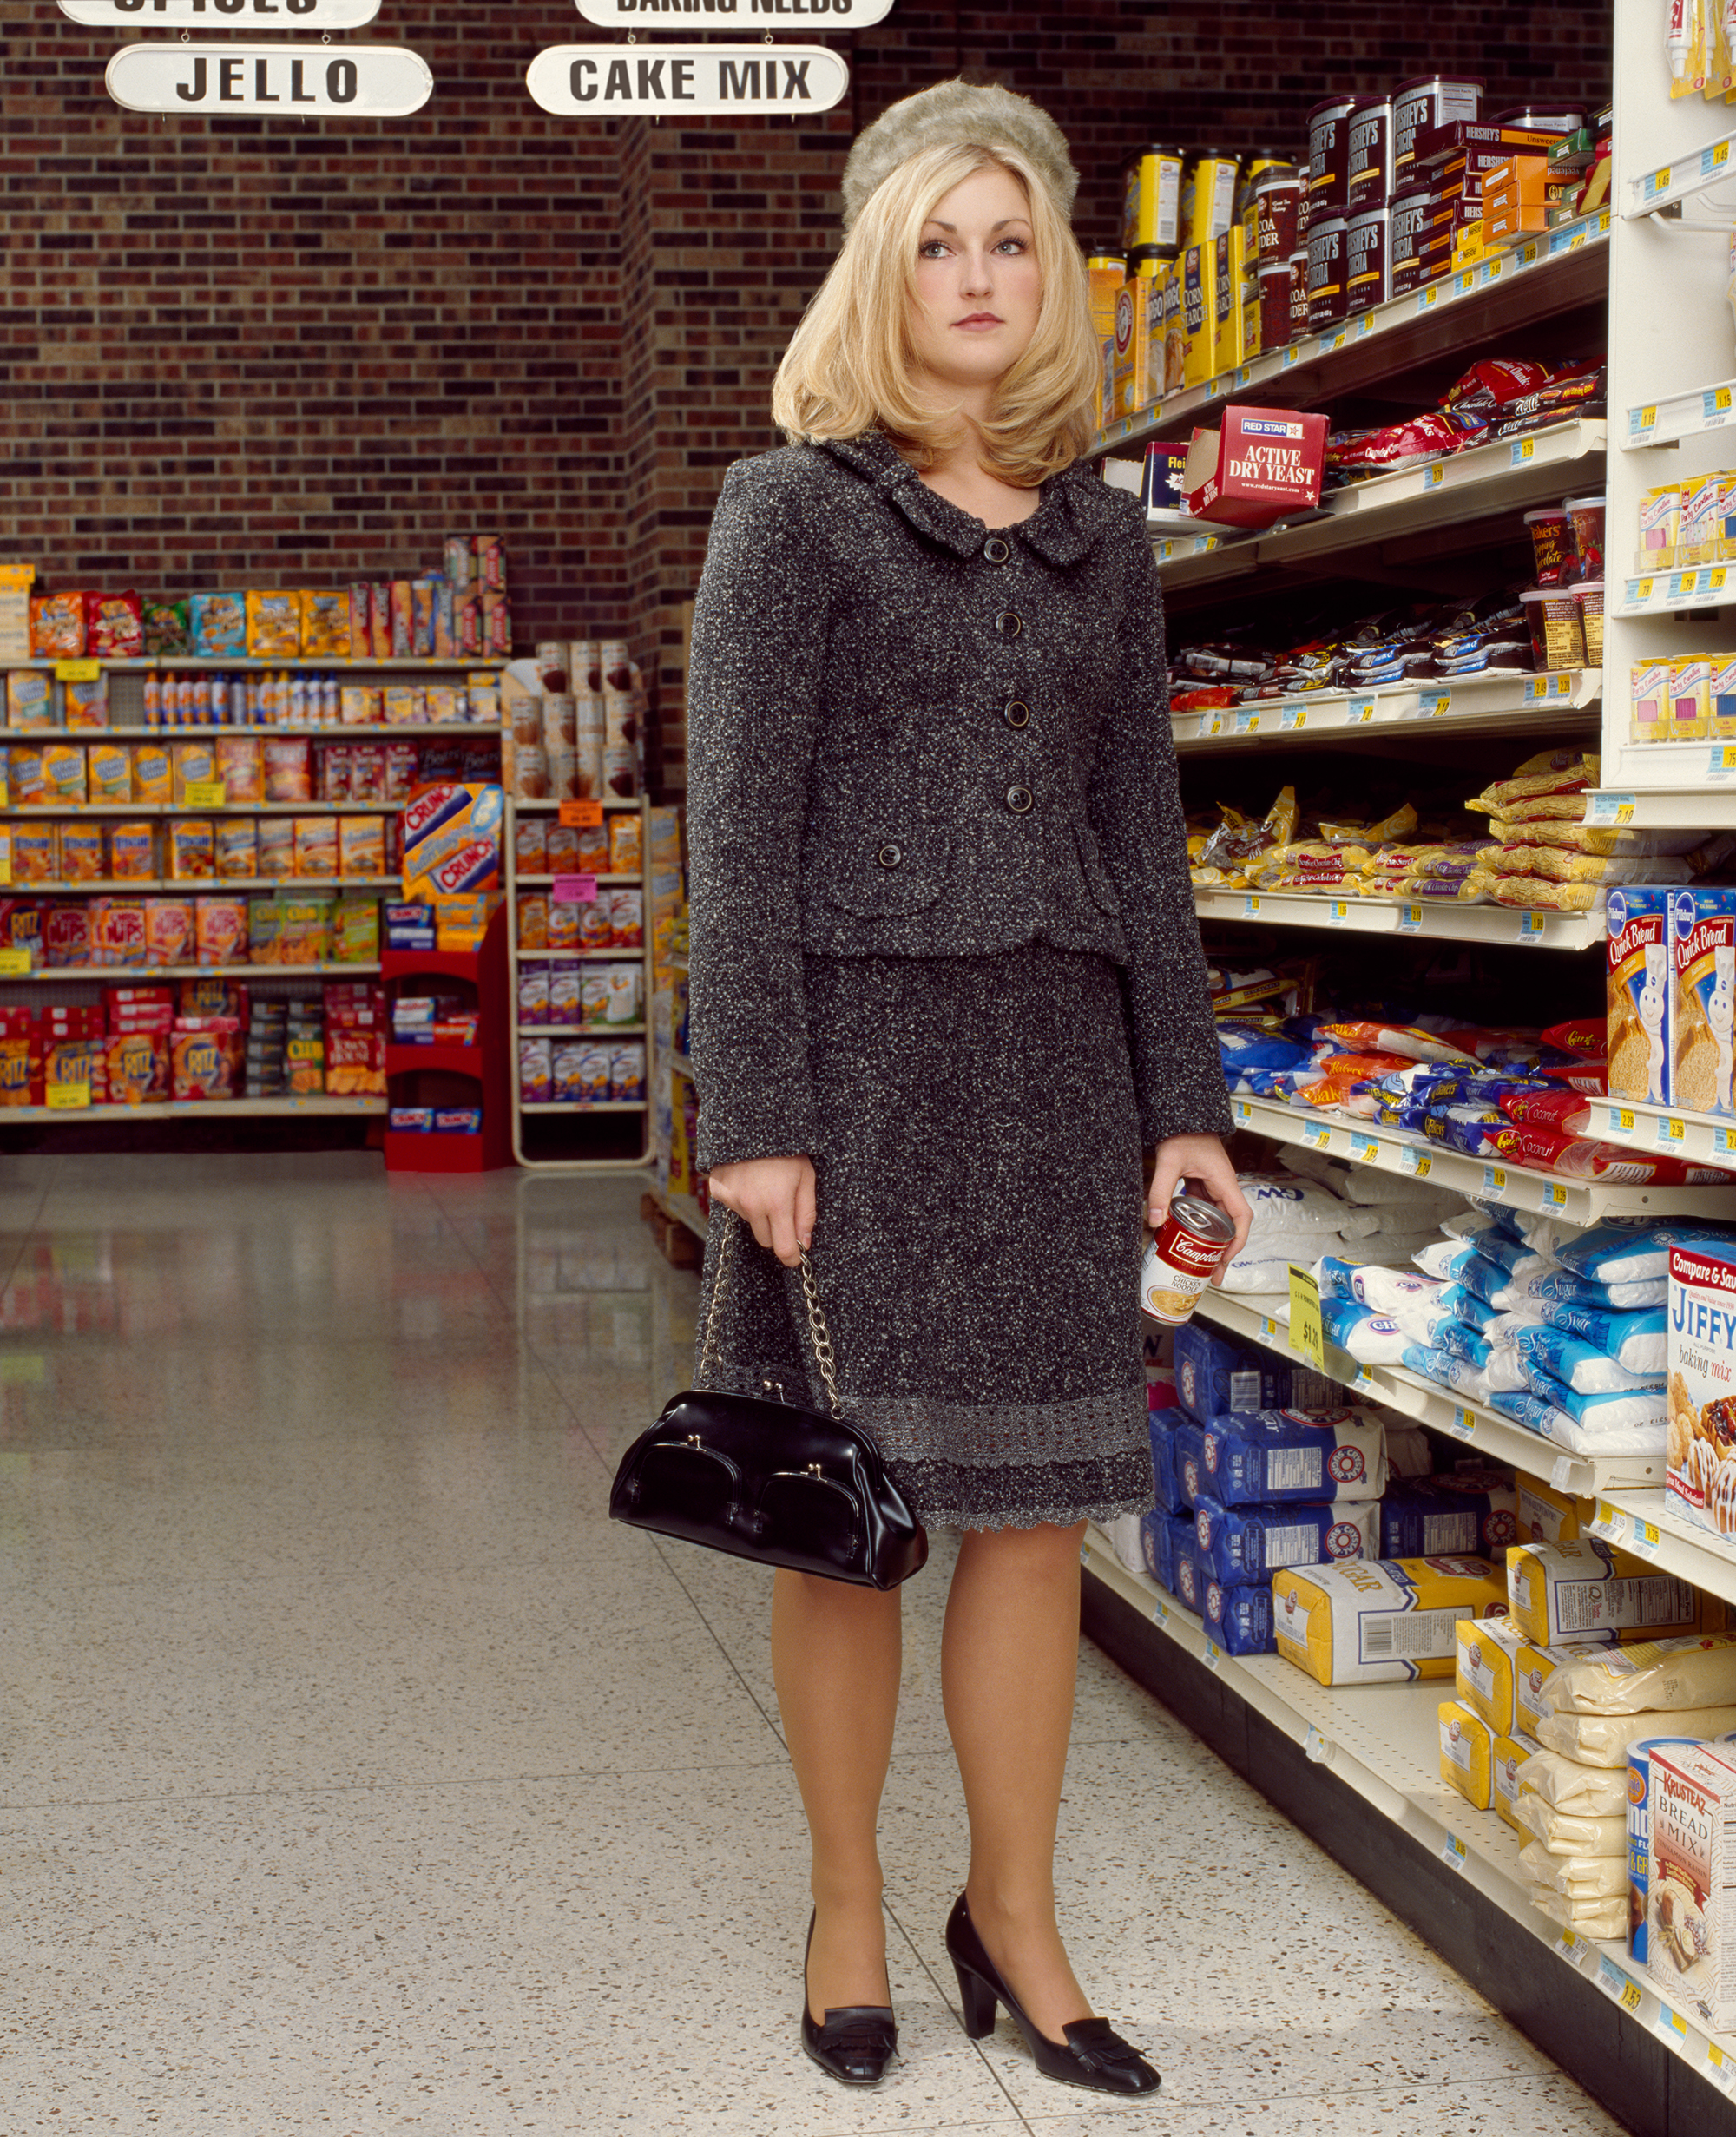 Grocery, 2006